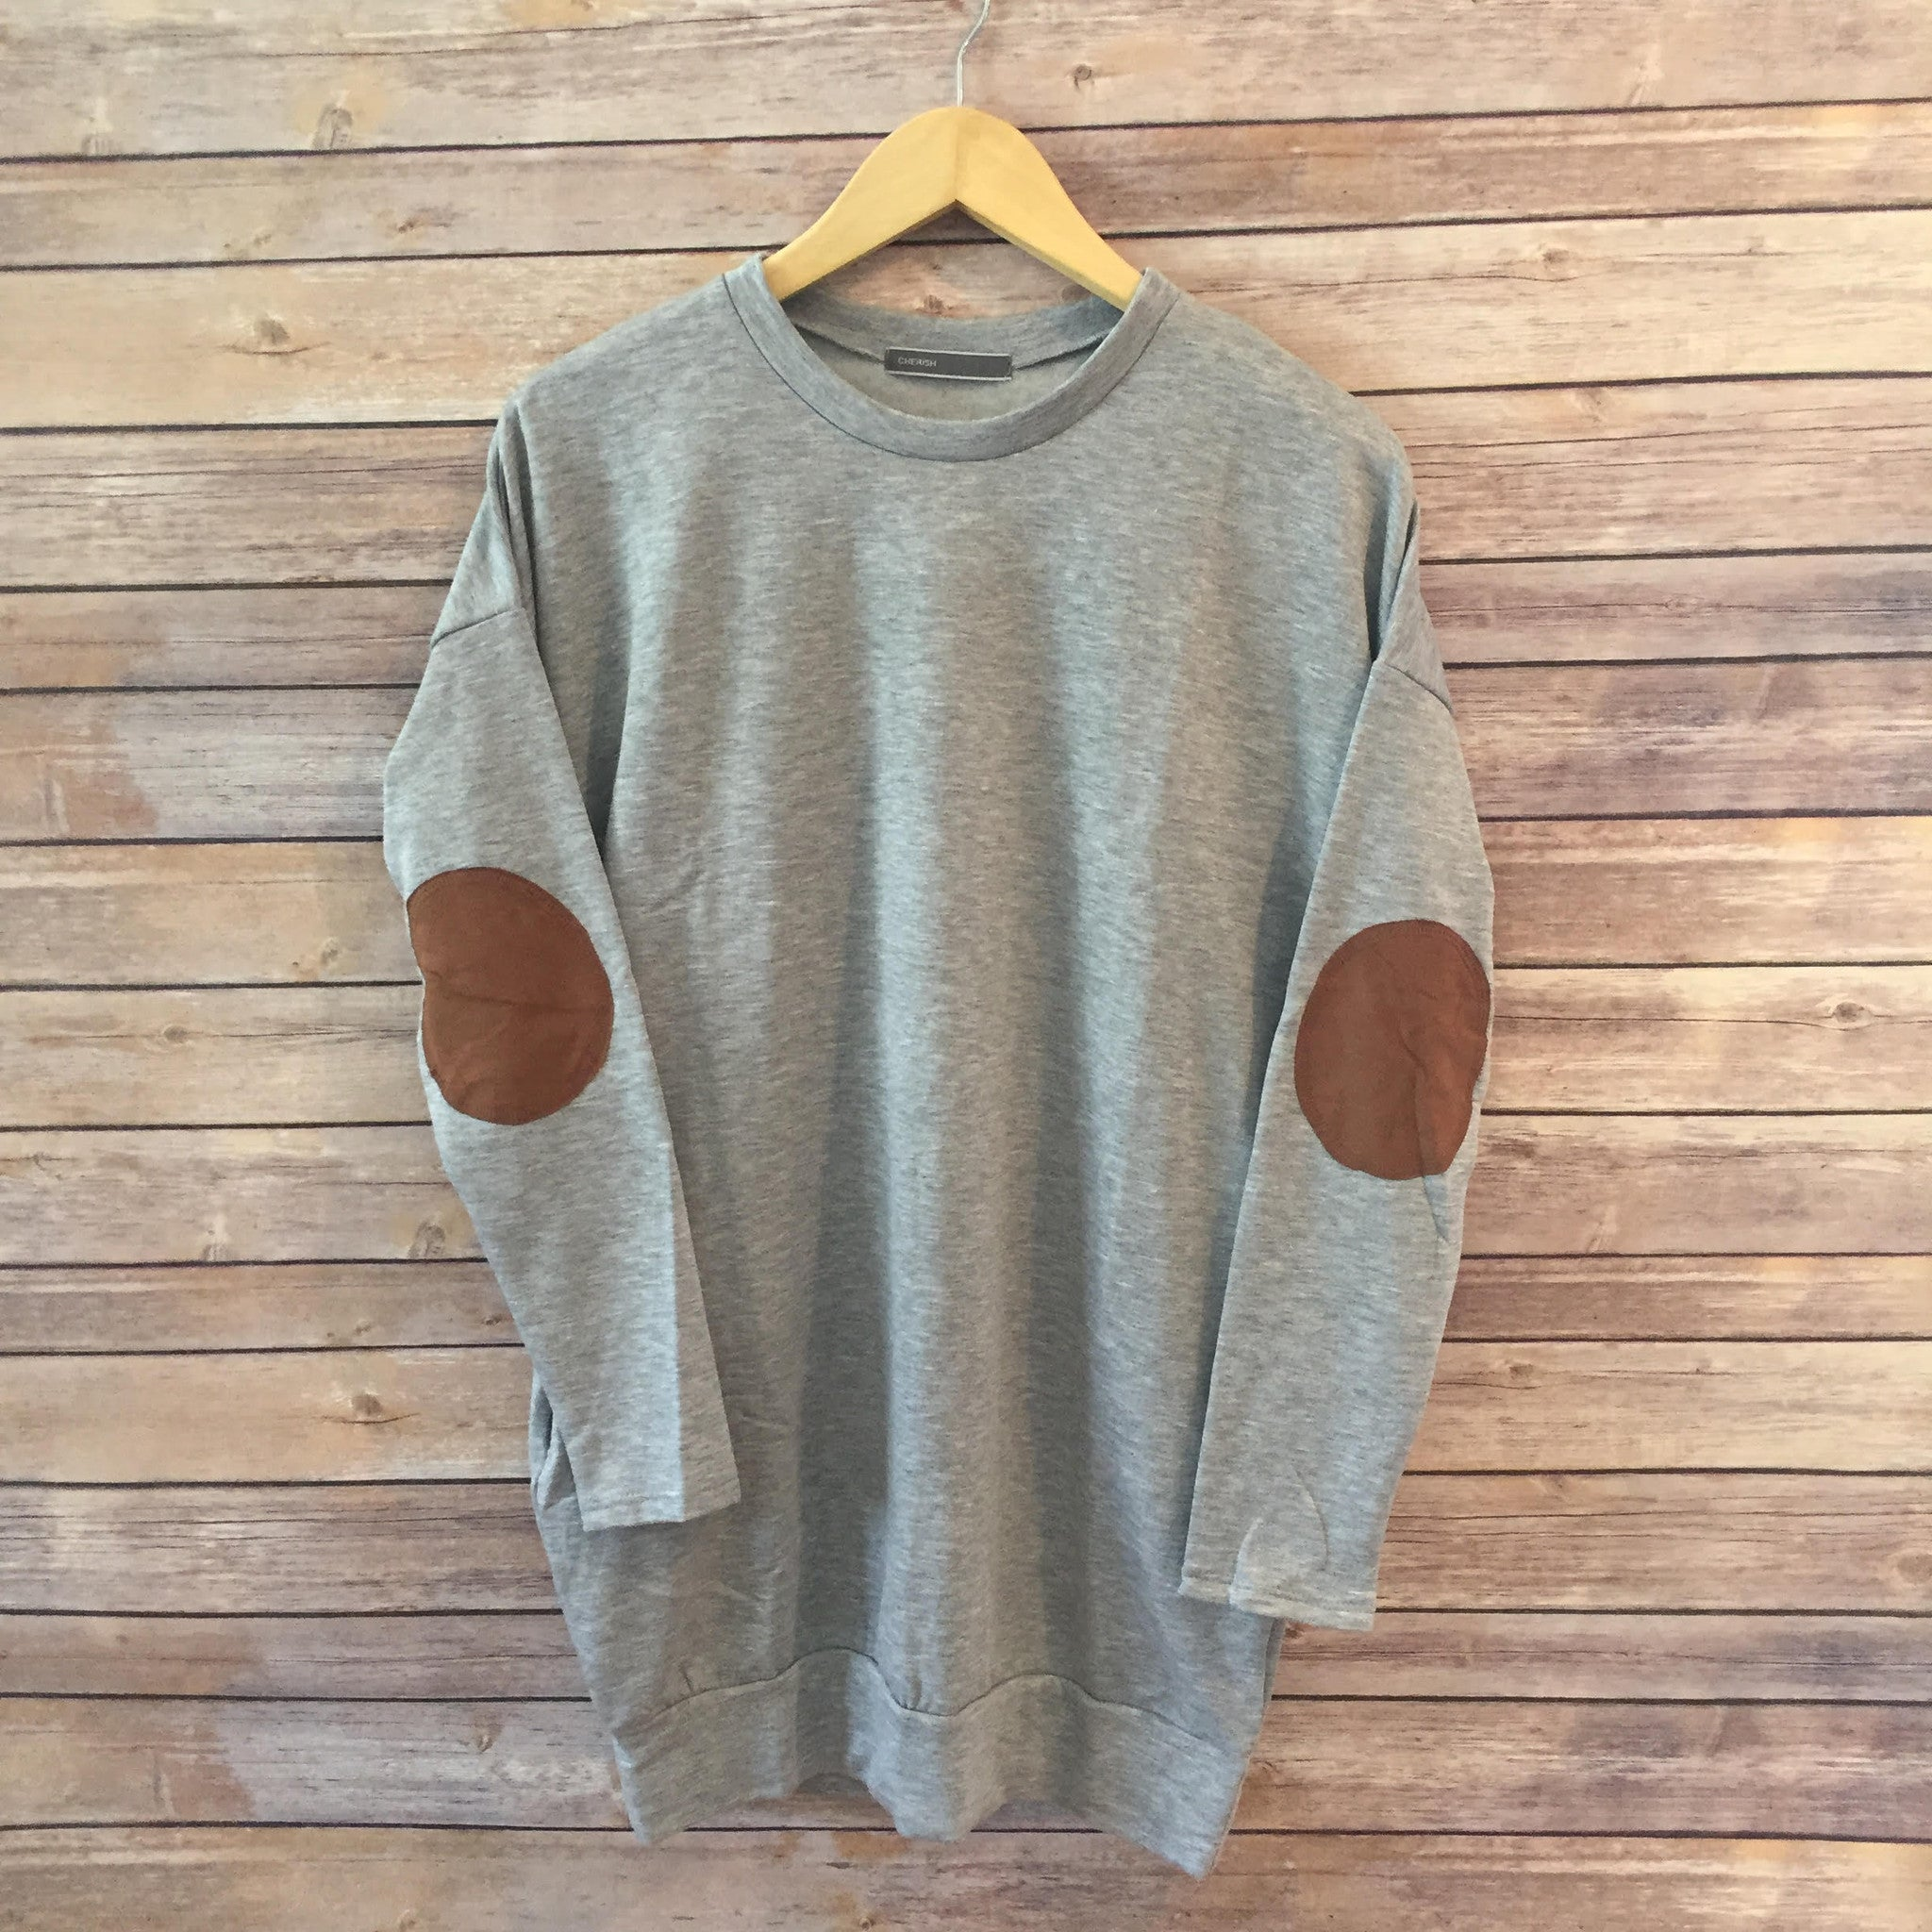 Brandy elbow patch sweatshirt GREY - Bea+Sea